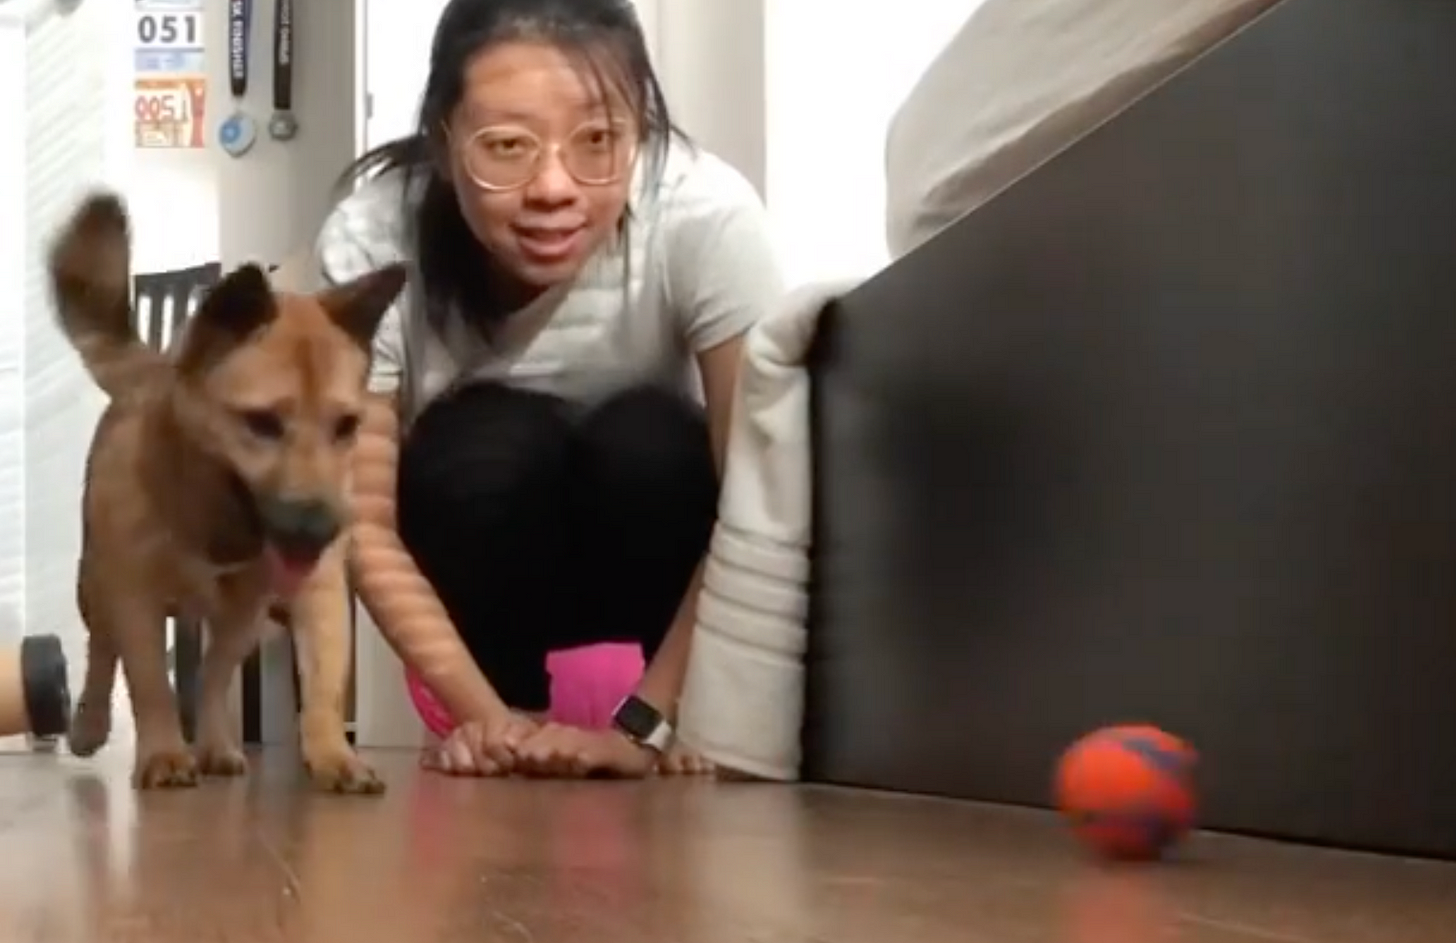 A small dog and a woman, looking excitedly at a ball nearby.